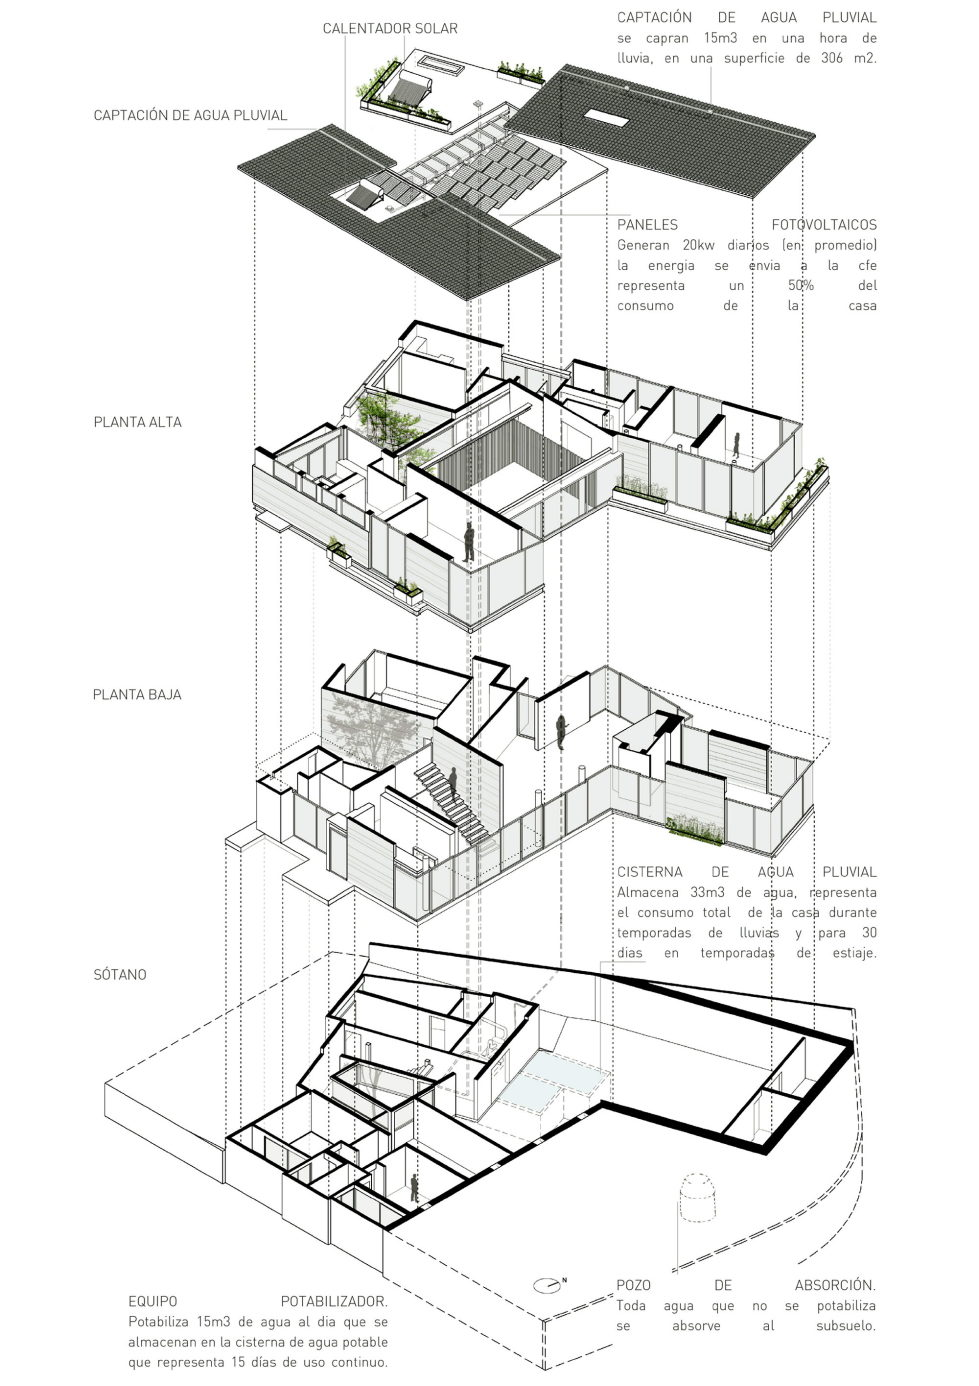 Private Residency Casa V9 In Mexico From VGZ Arquitectura Studio - Plan 9